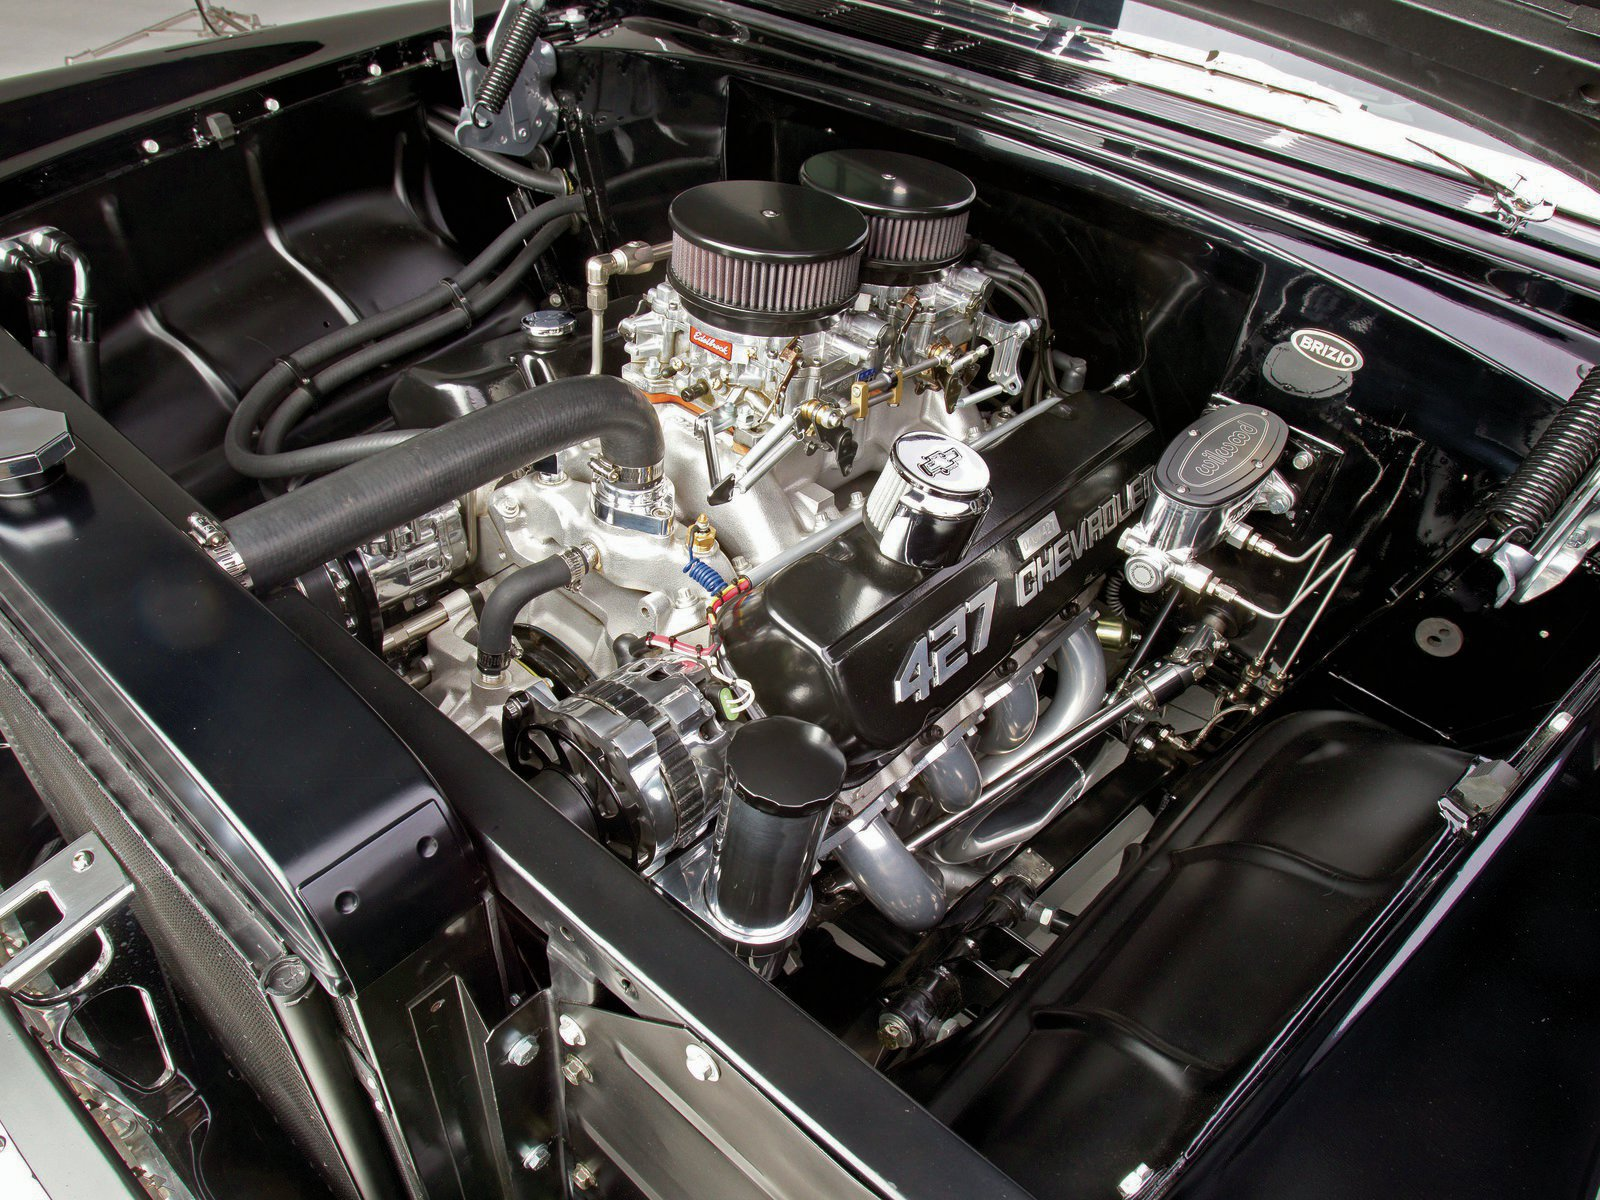 Chevrolet Performance built a limited edition of 427 of the Anniversary 427ci ZL1 engines. Scott and Fred dropped #46 in their '55. With 2x4 carburetion and 10:1 compression, it squeezes out almost 500 hp.